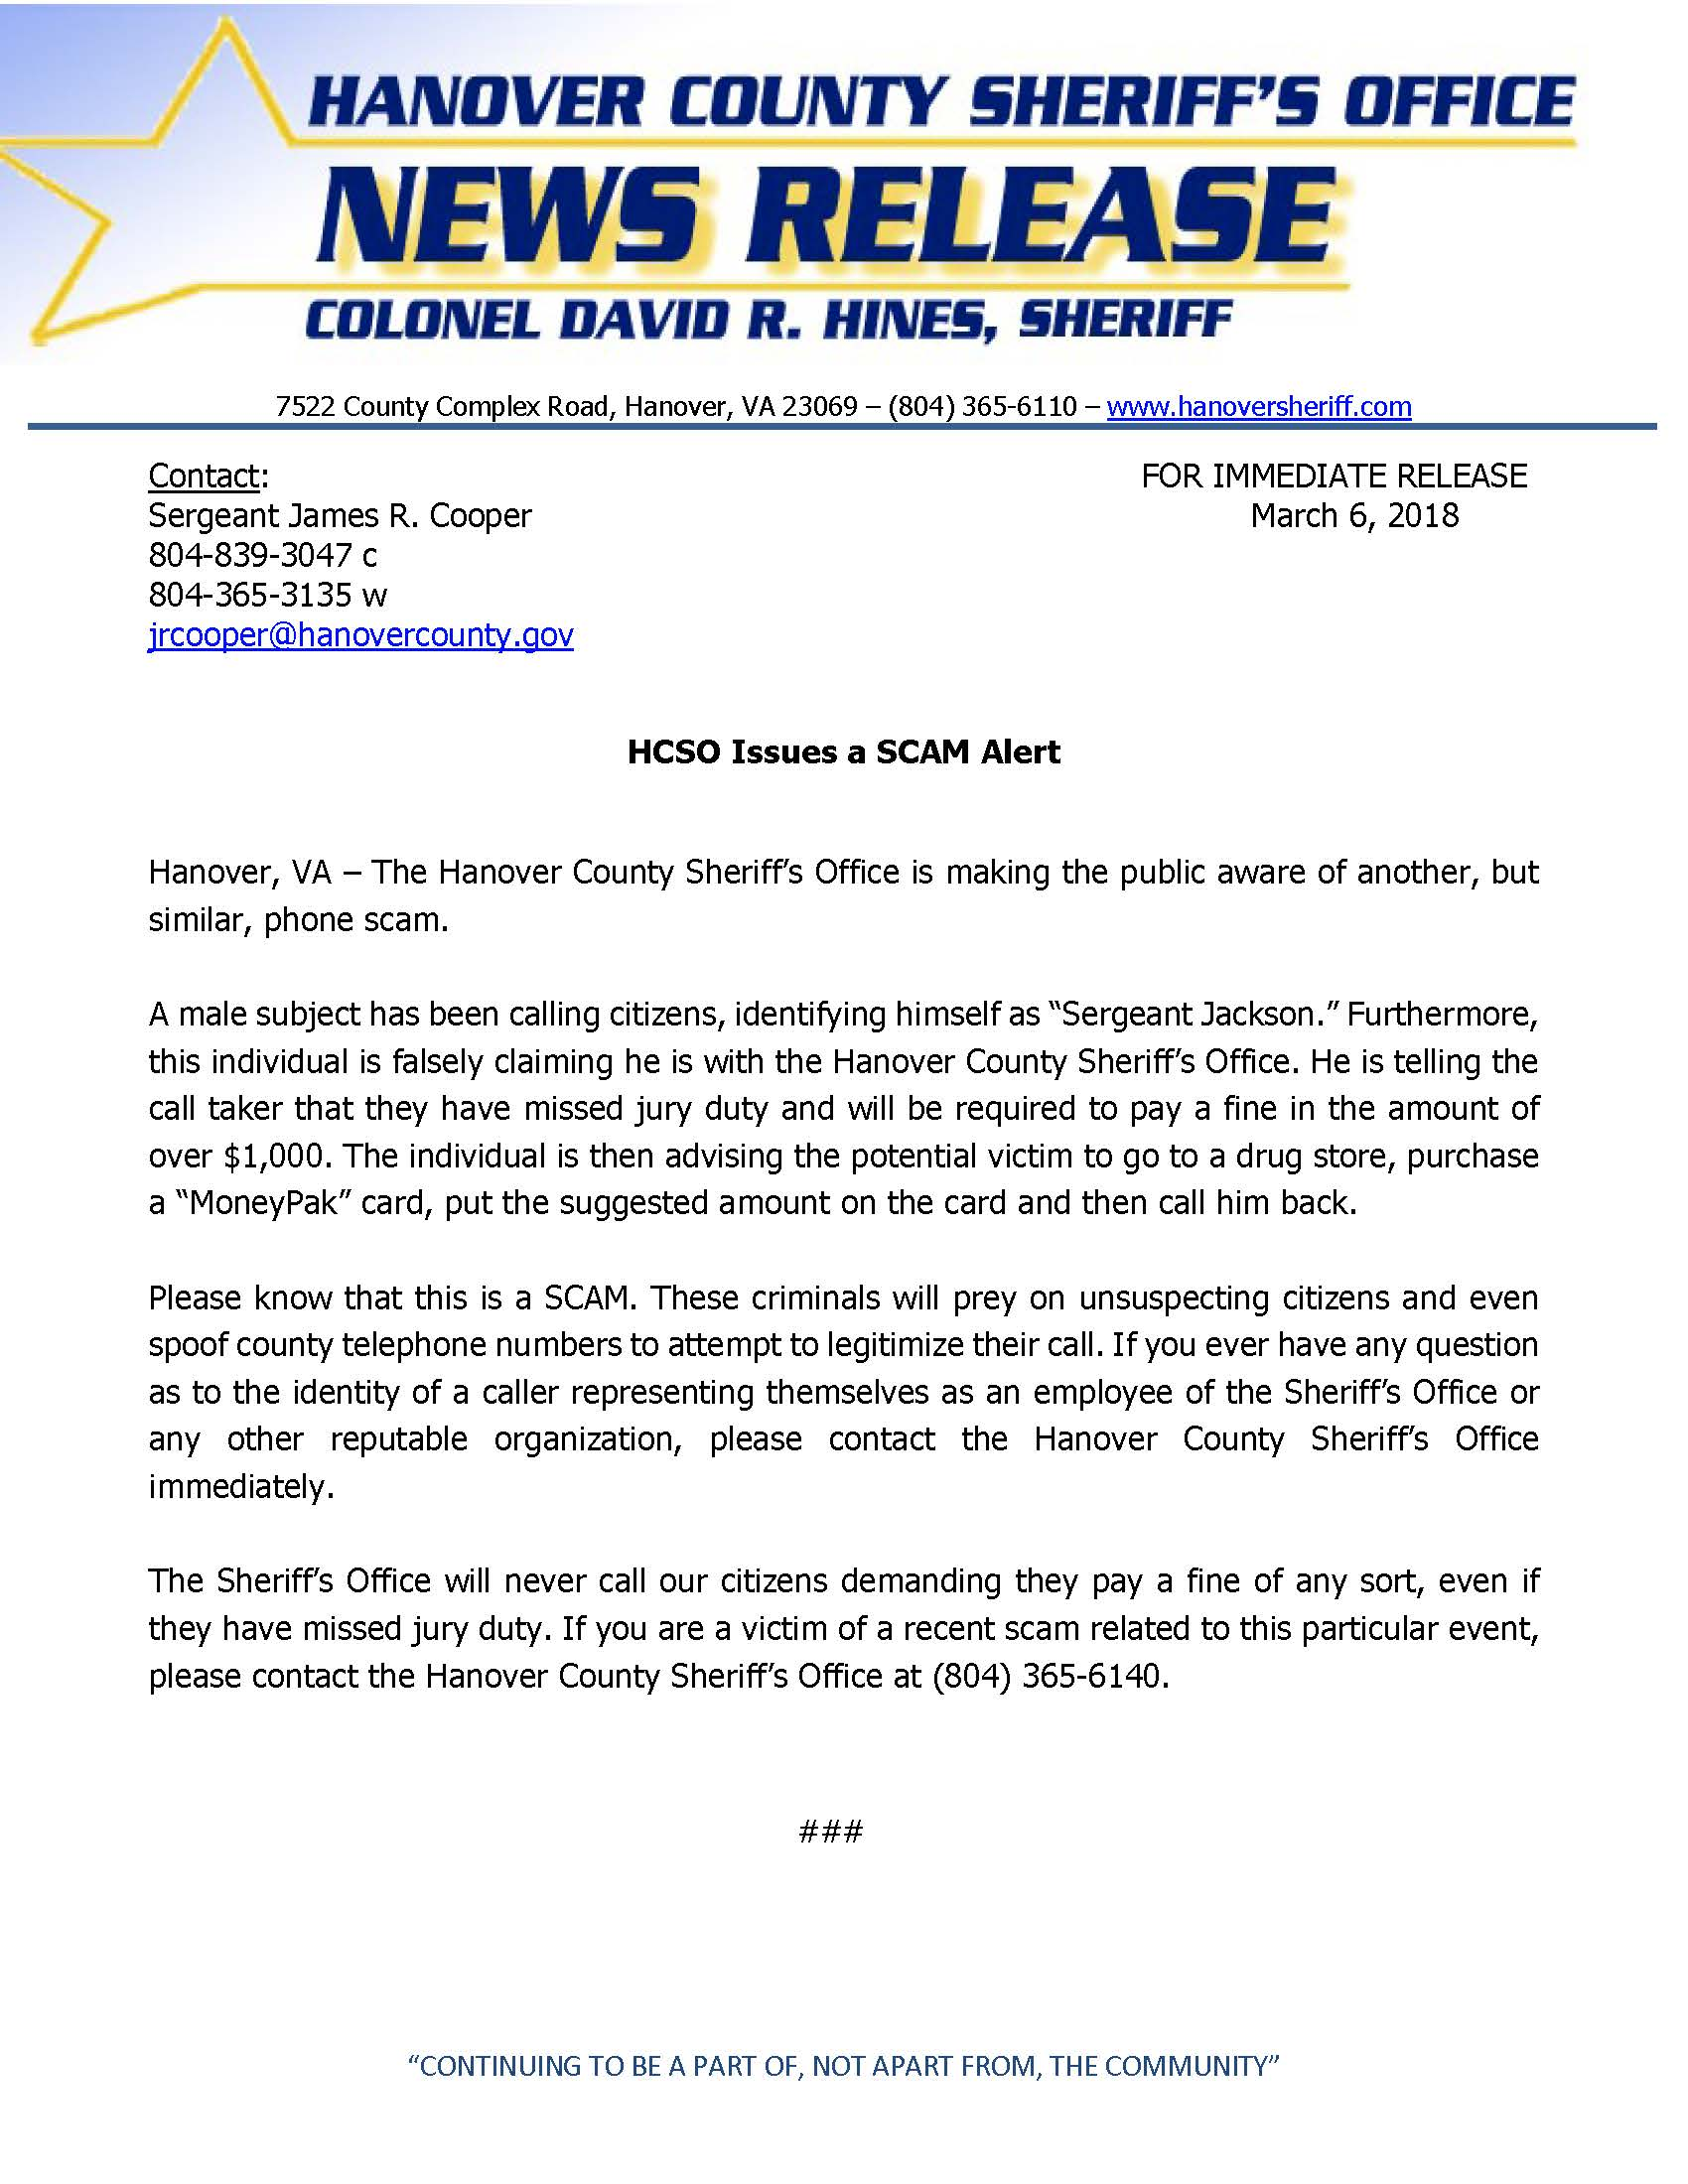 HCSO - HCSO Issues SCAM Alert- March 6, 2018